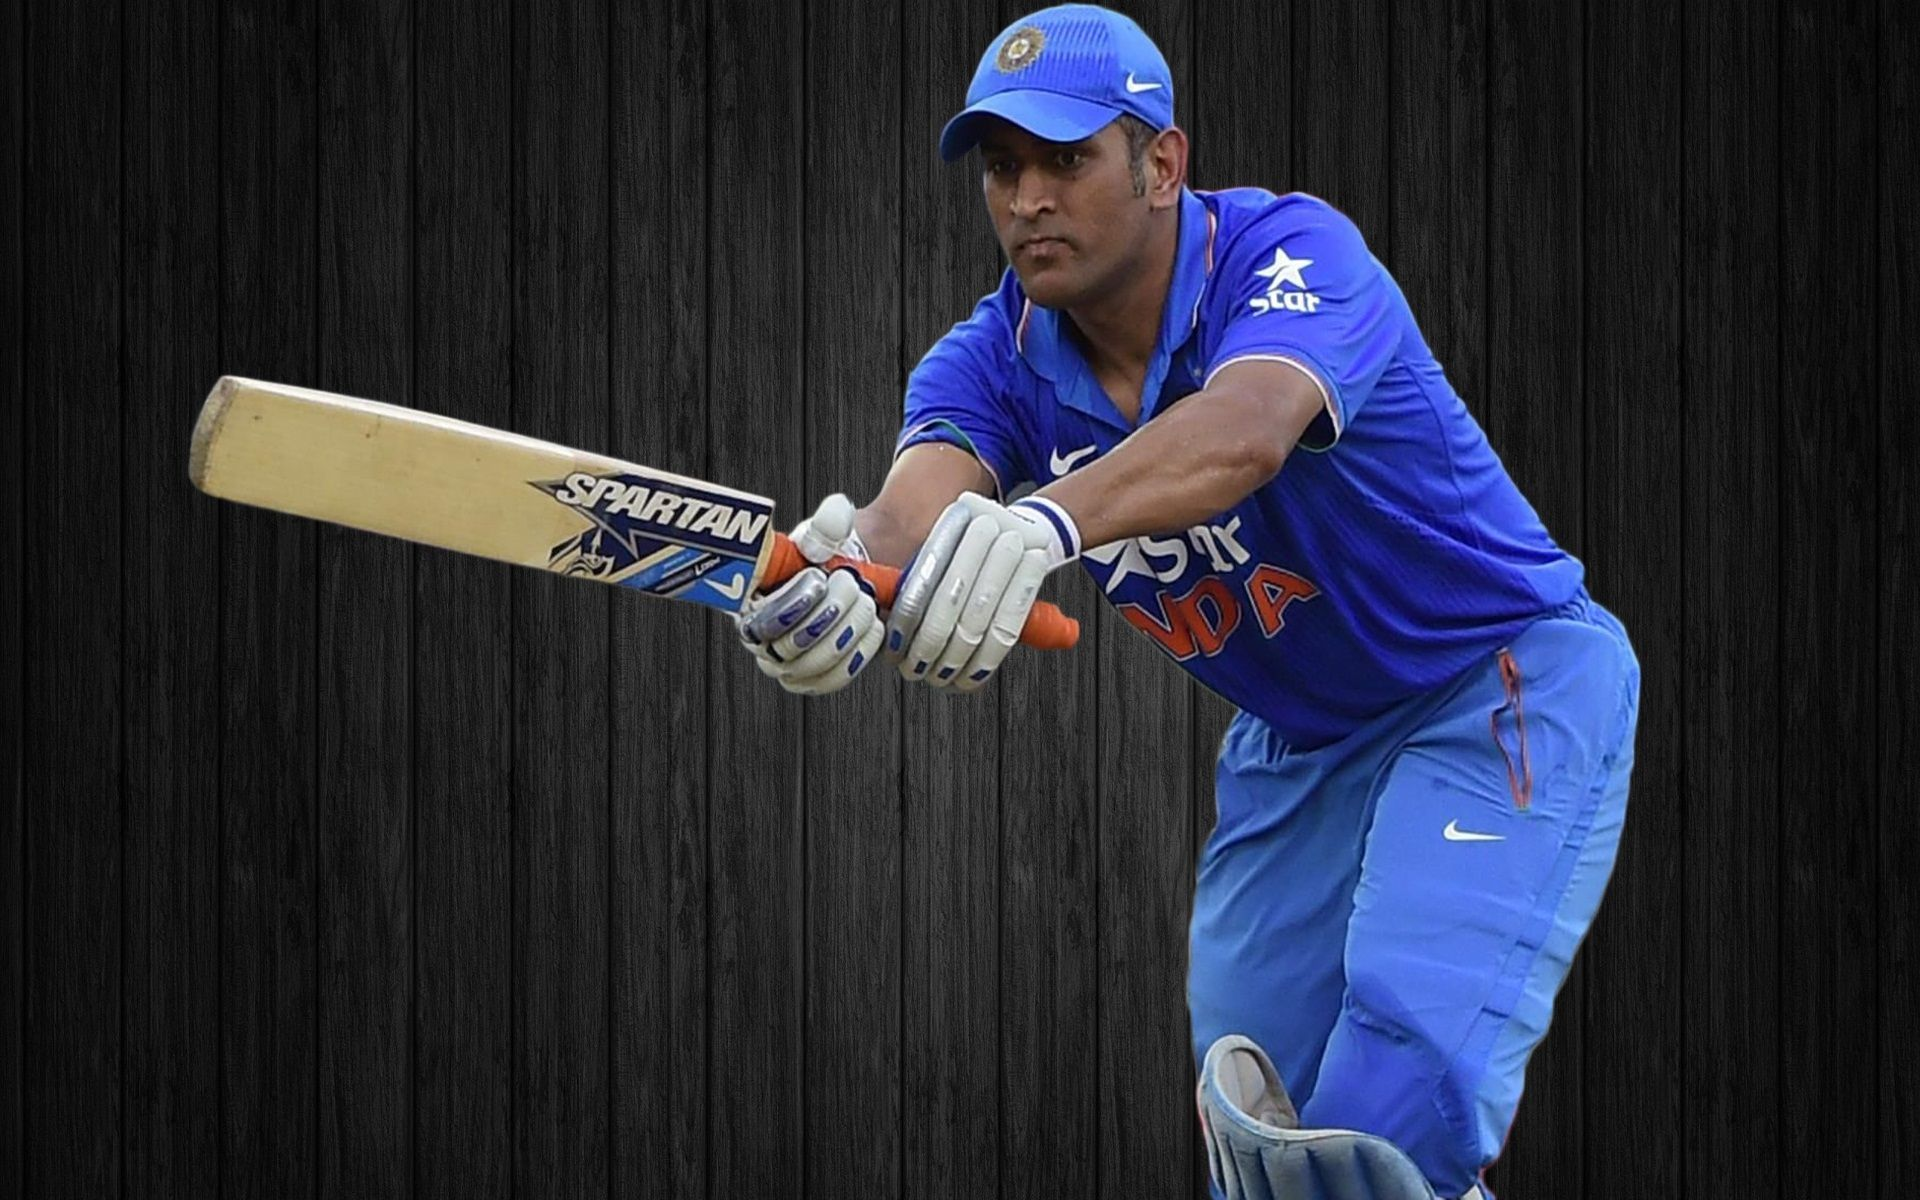 Ms dhoni net worth and earning with cars images a sports news - Ms Dhoni New Photos And Wallpapers Ms Dhoni Mahendra 650 602 Ms Dhoni New Wallpapers